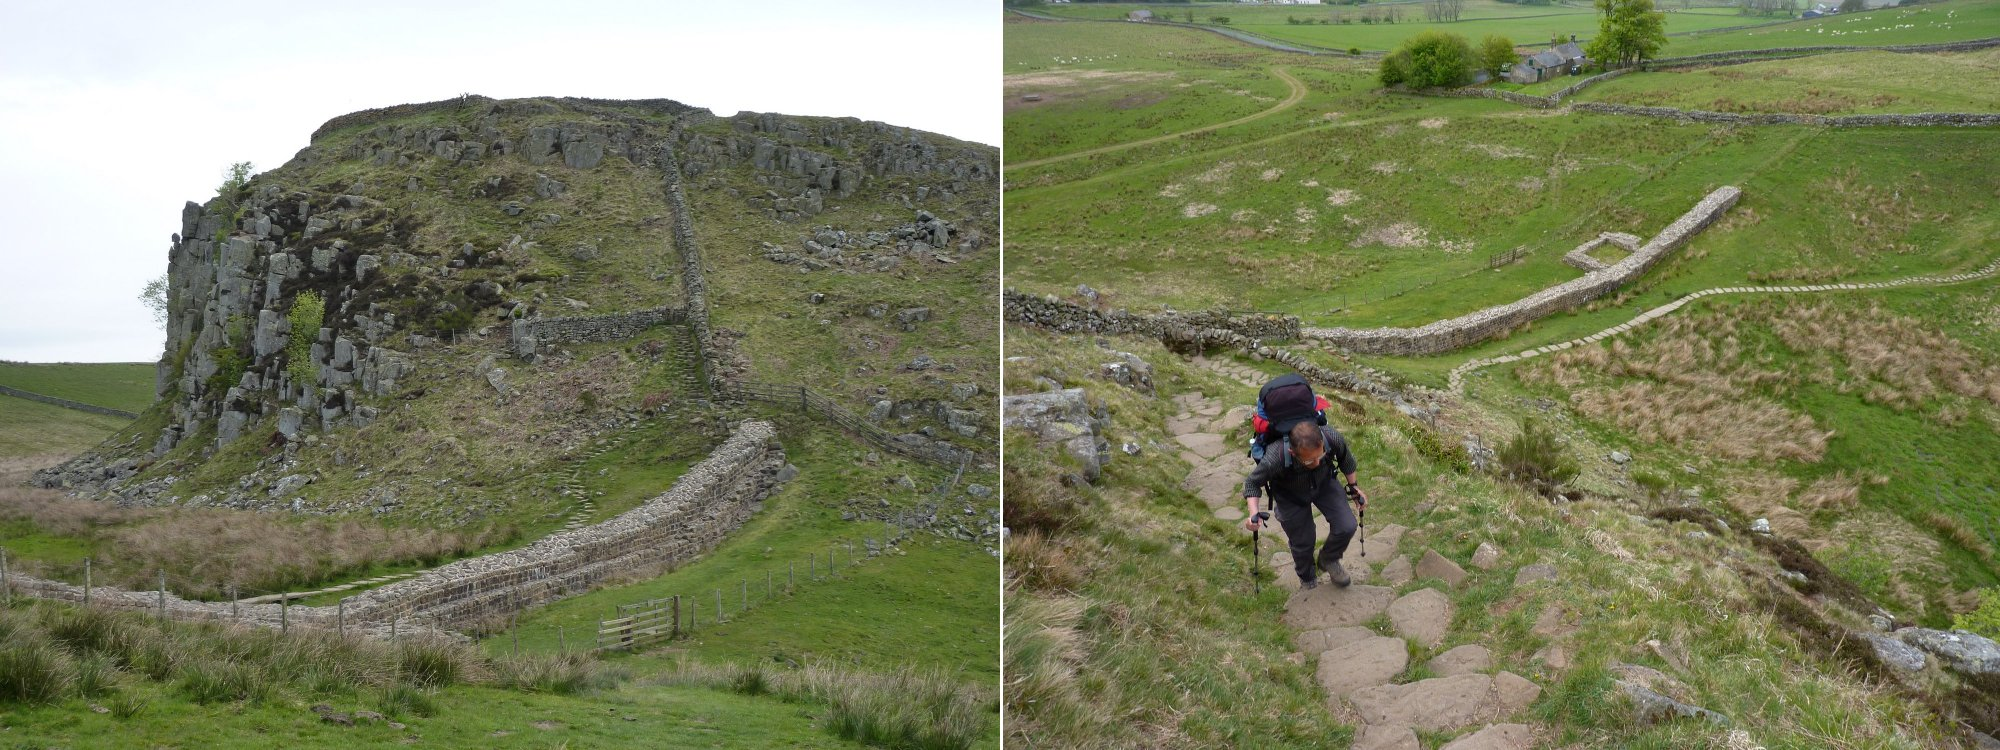 Left to Right: First climb of the day - Steel Rigg, Tony climbs the steps on Steel Rigg